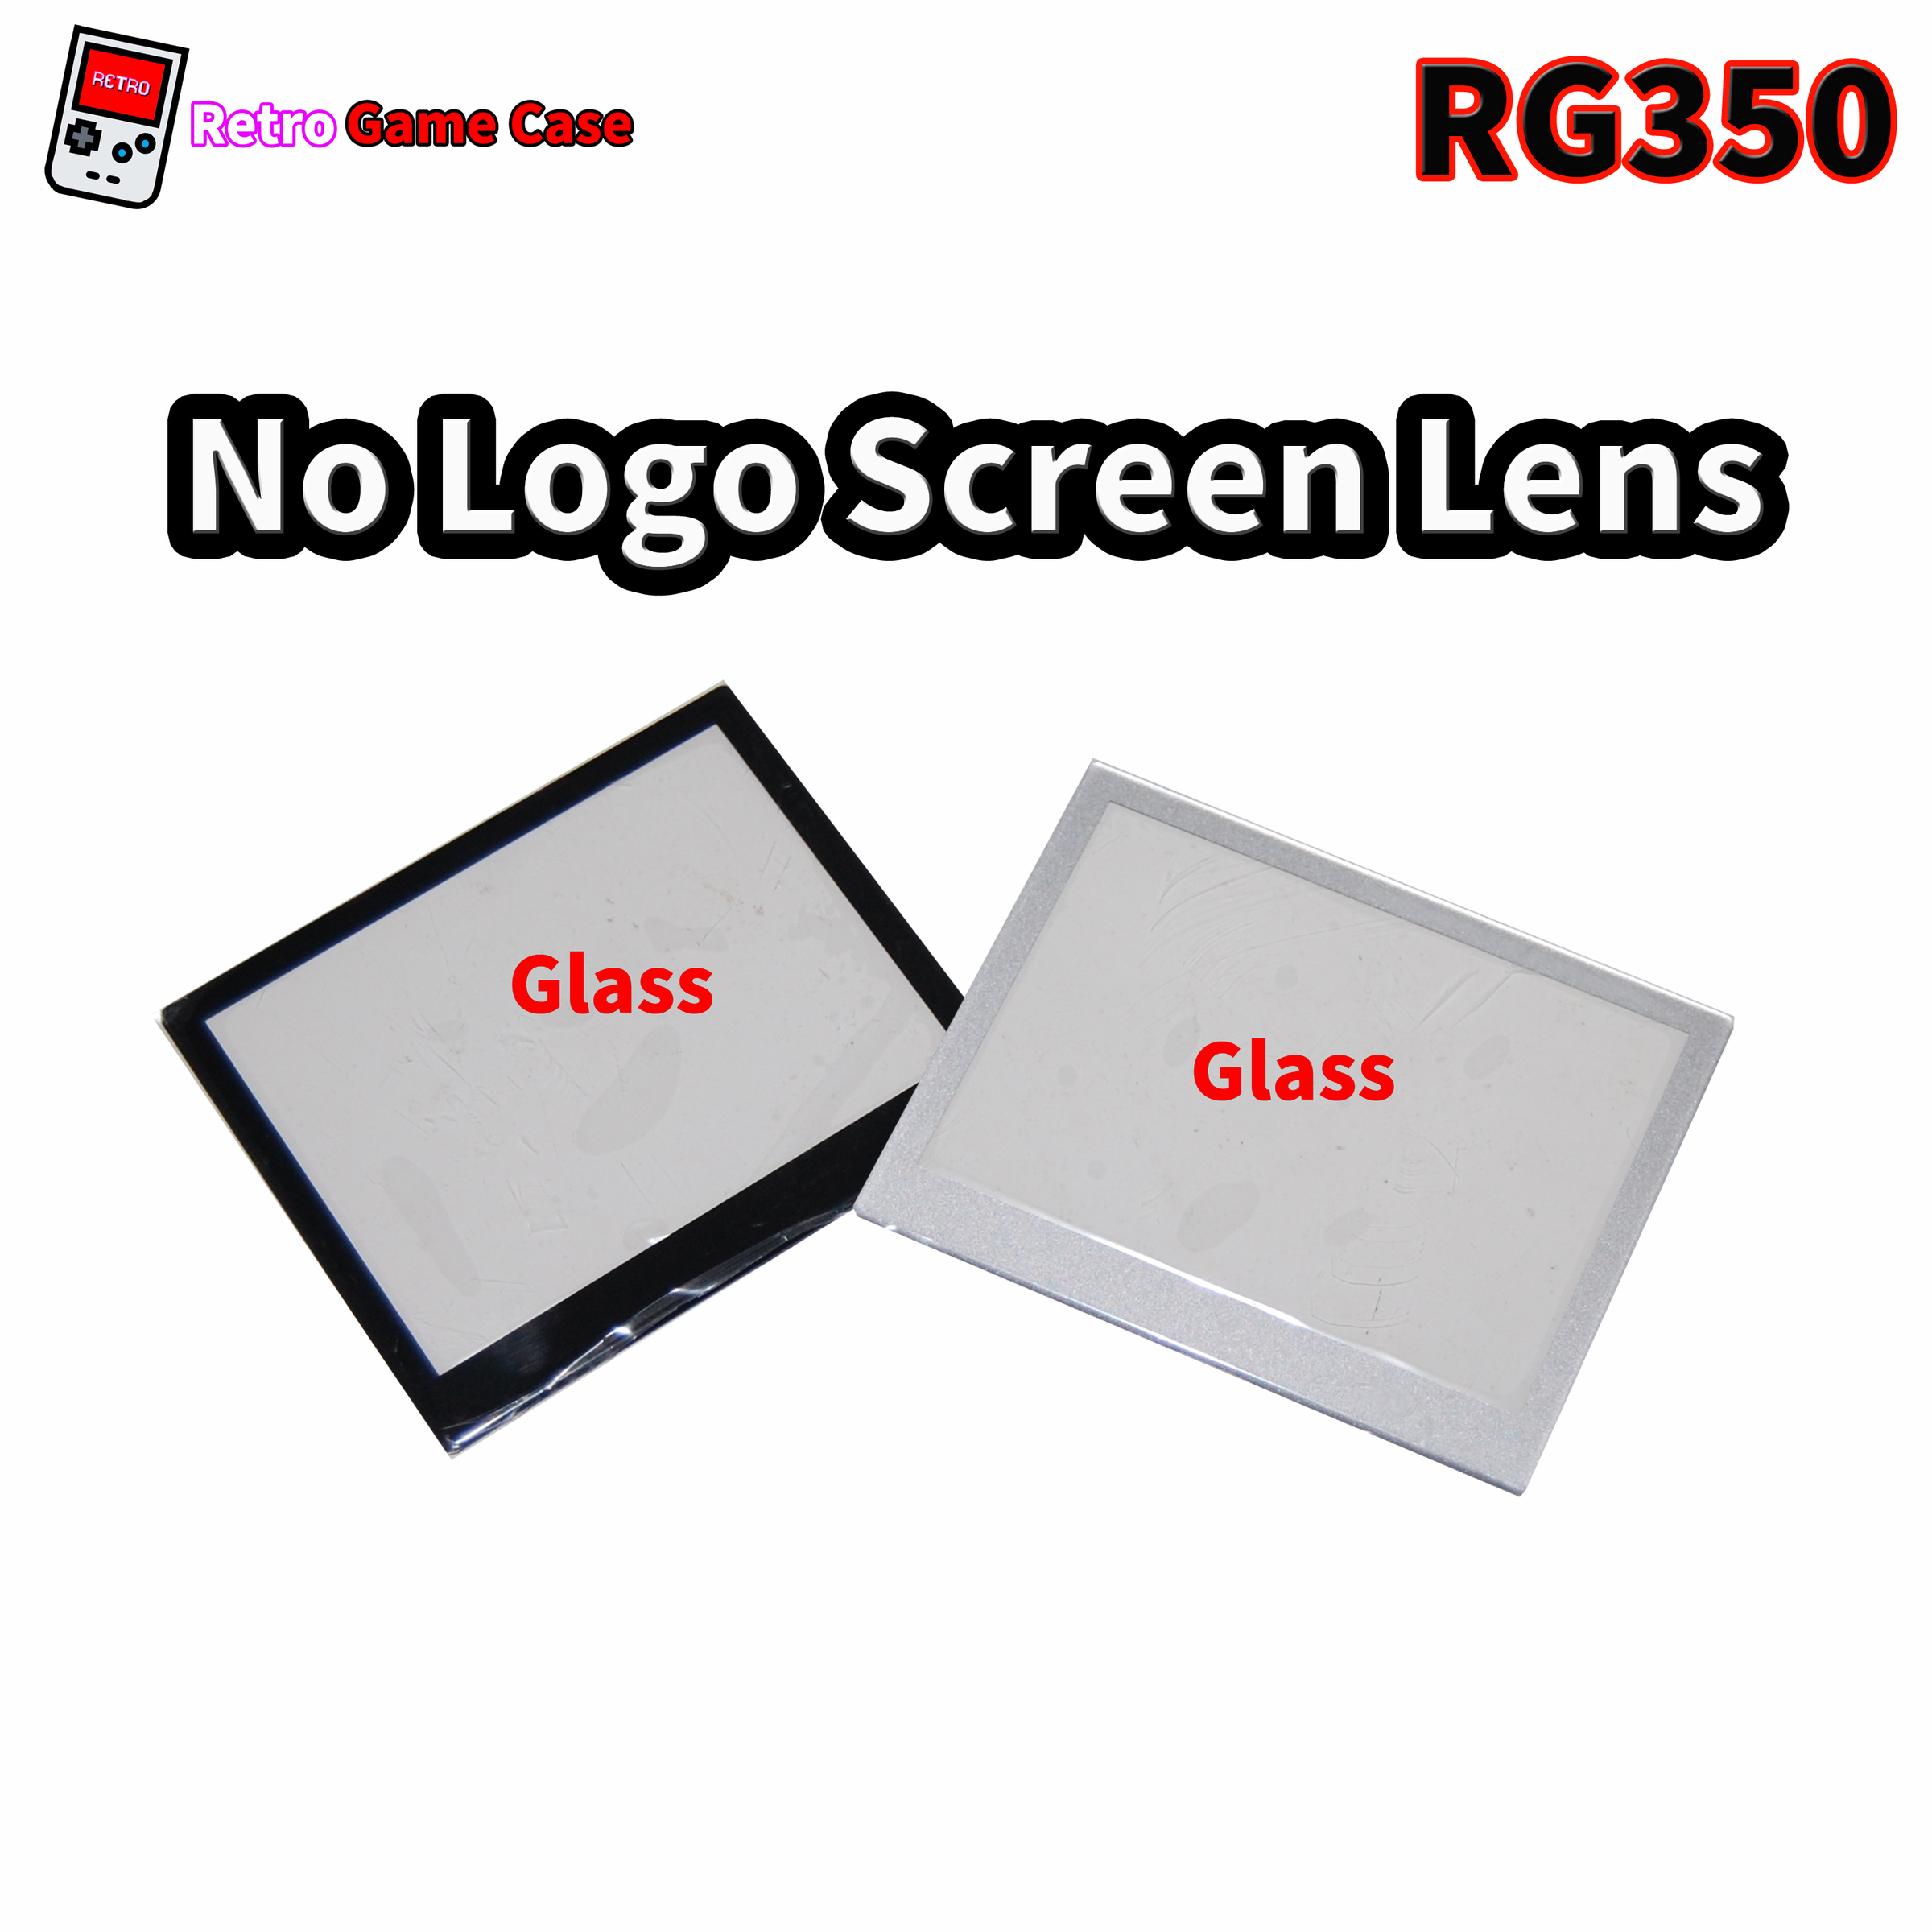 RG350 Handheld Gaming Consoles Screen Lenses Without LOGO (Glass)